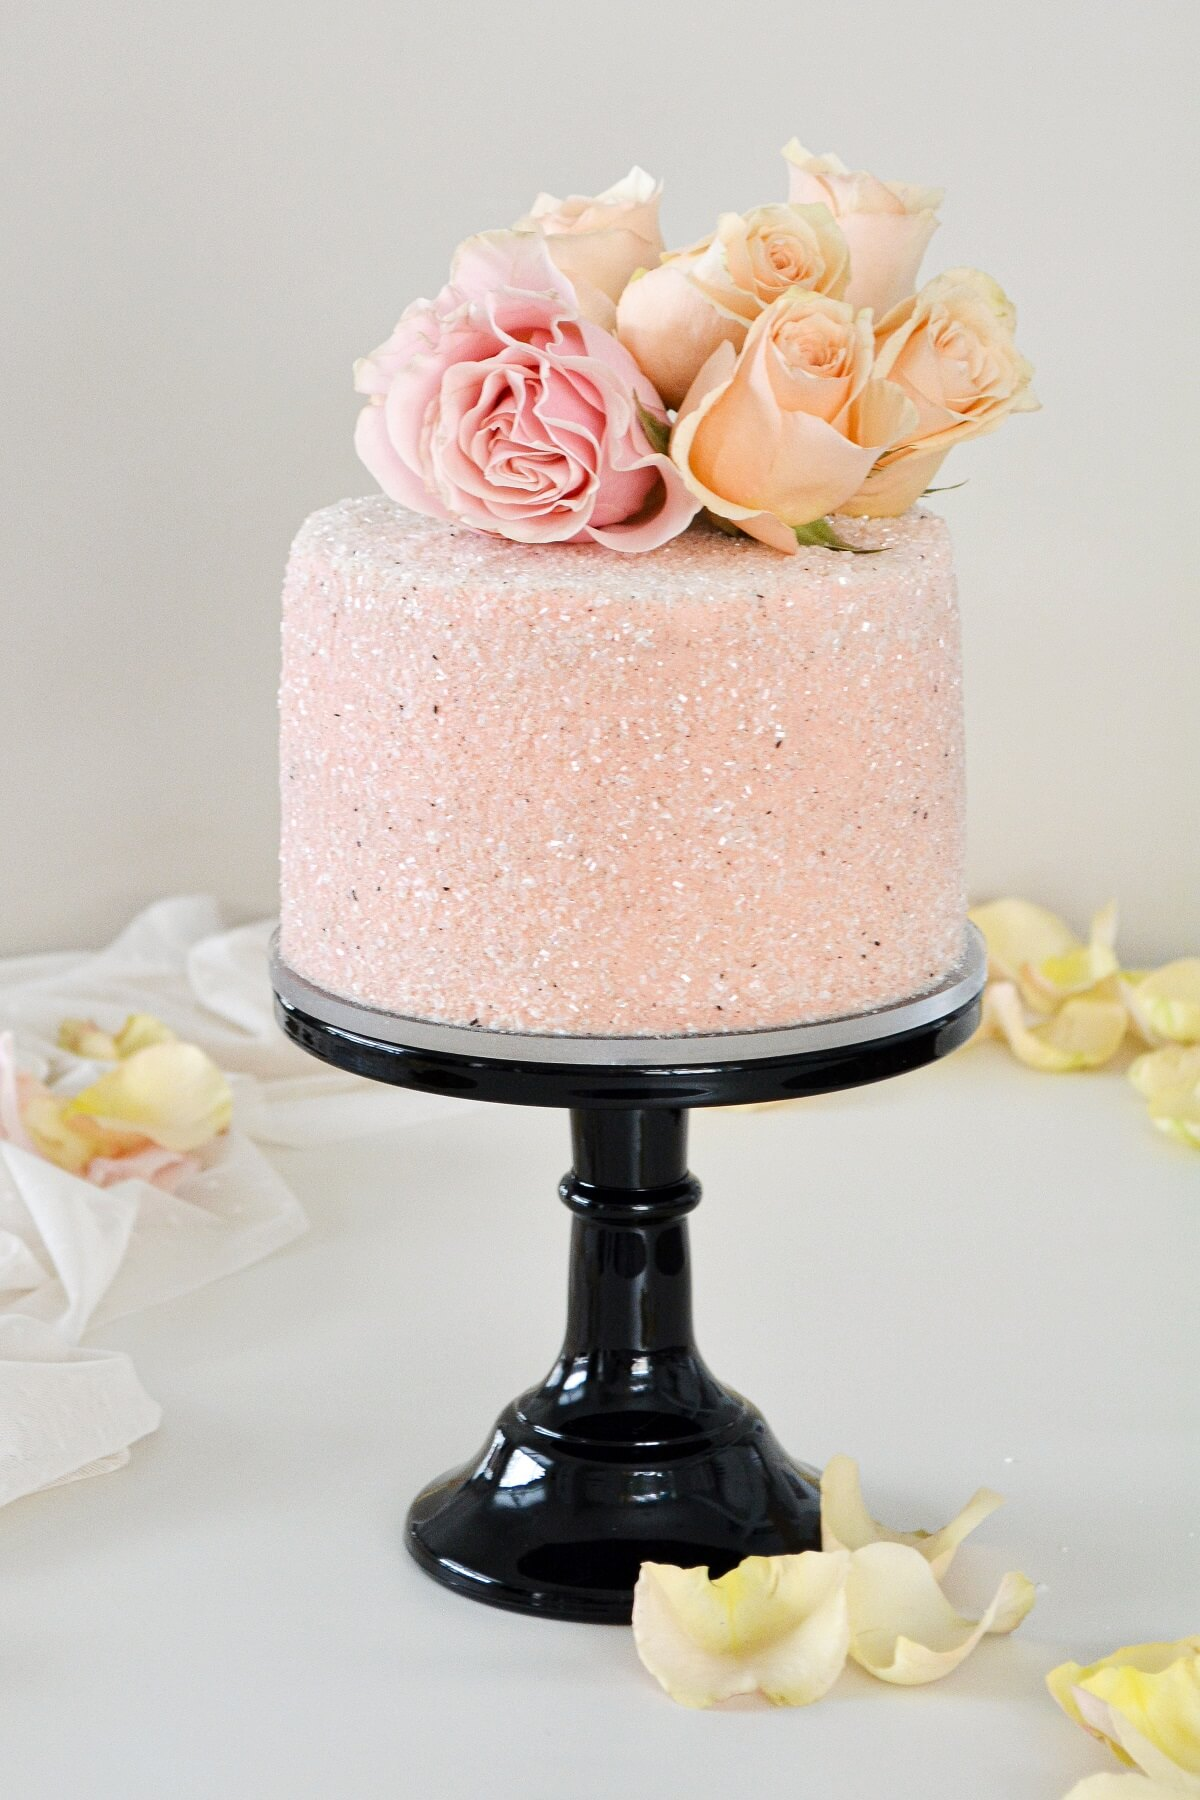 Chocolate peppermint cake, covered in pink sparkling sugar and pink and peach roses.